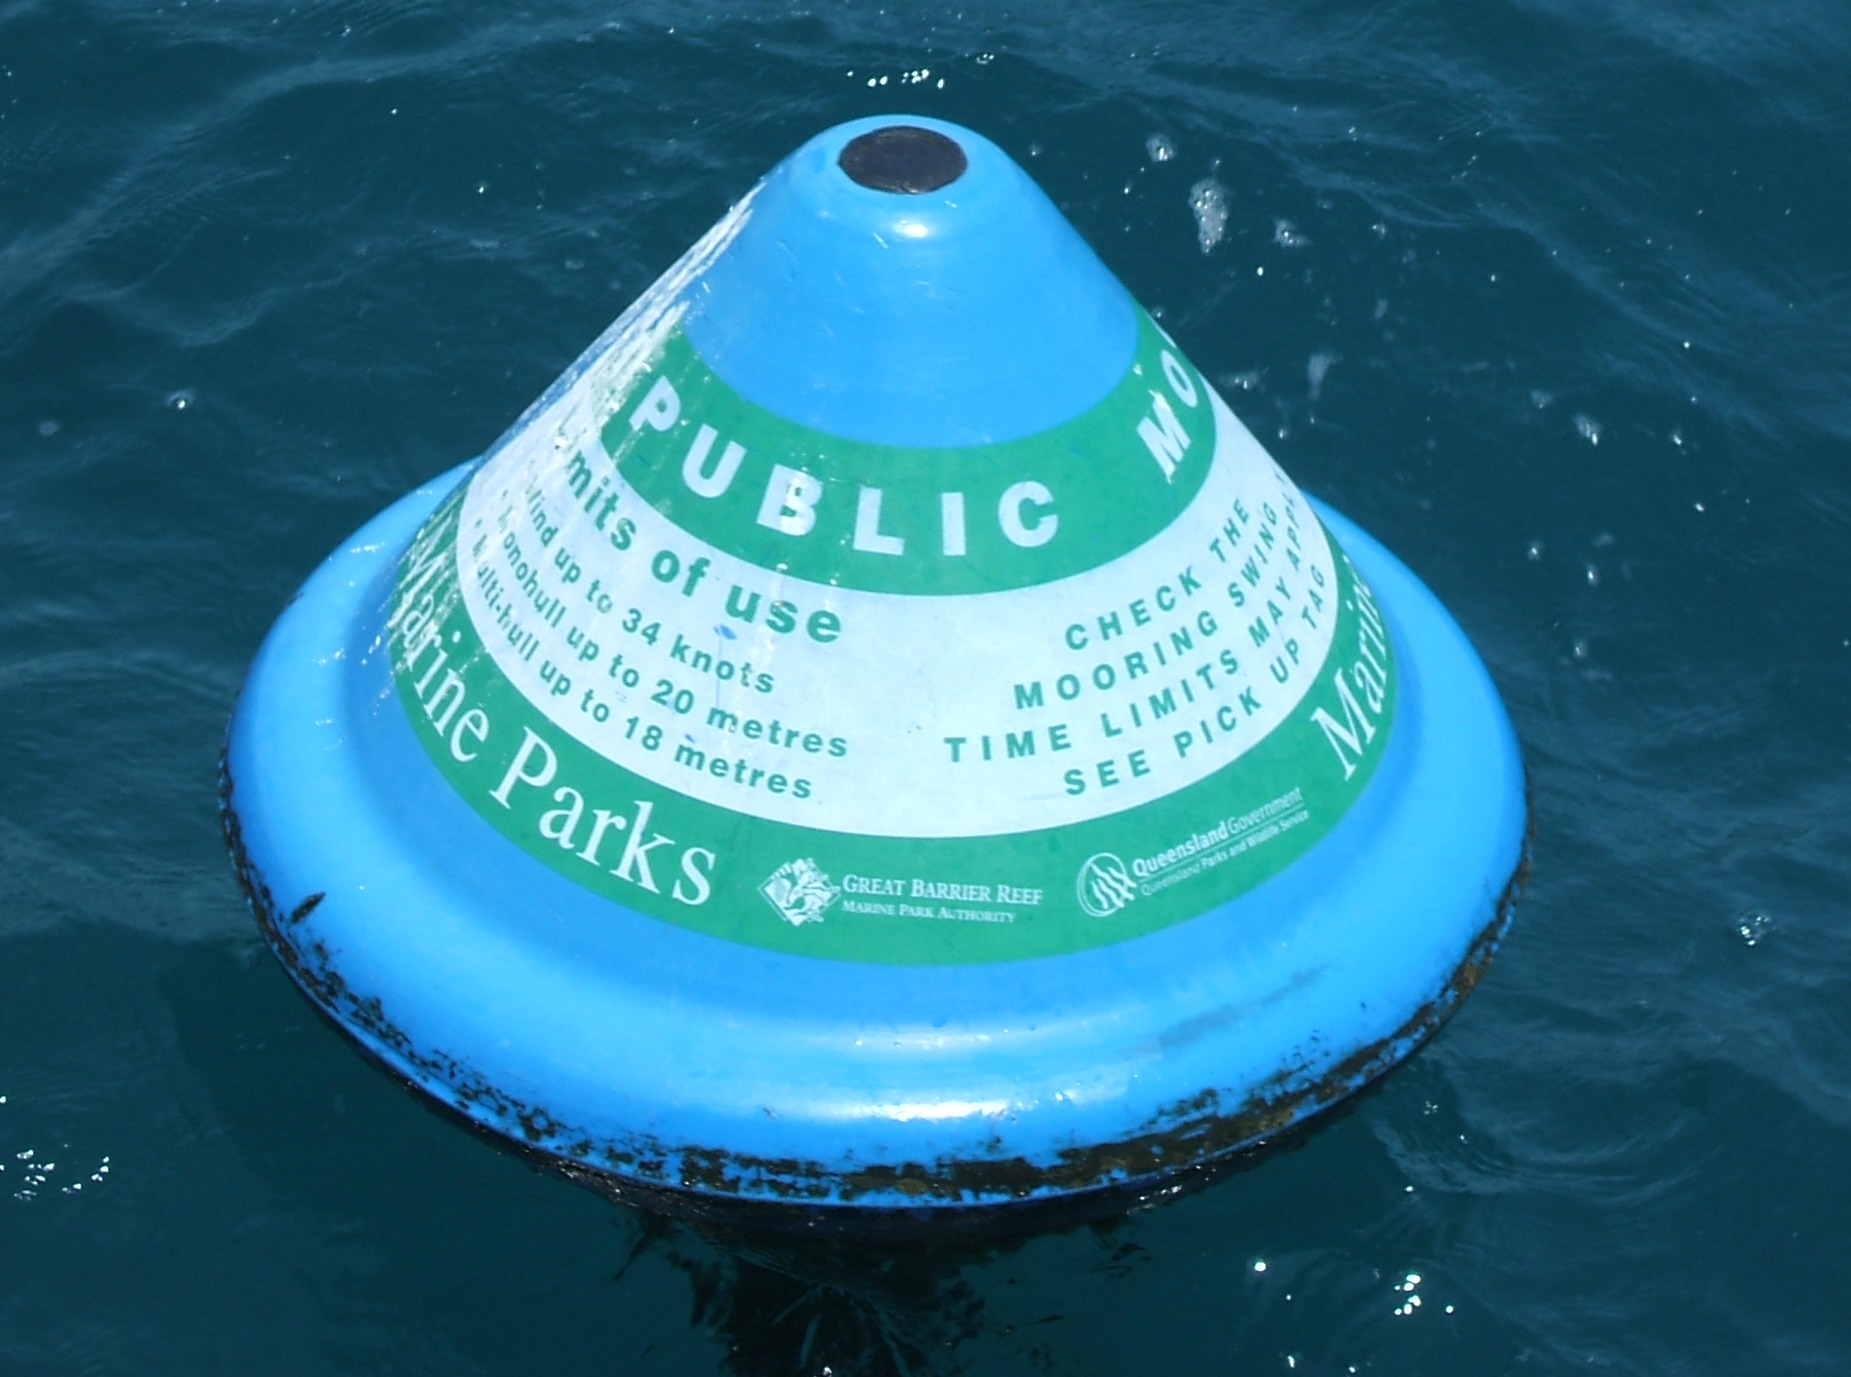 Public moorings are available to all Reef users and are shaped like a blue beehive.